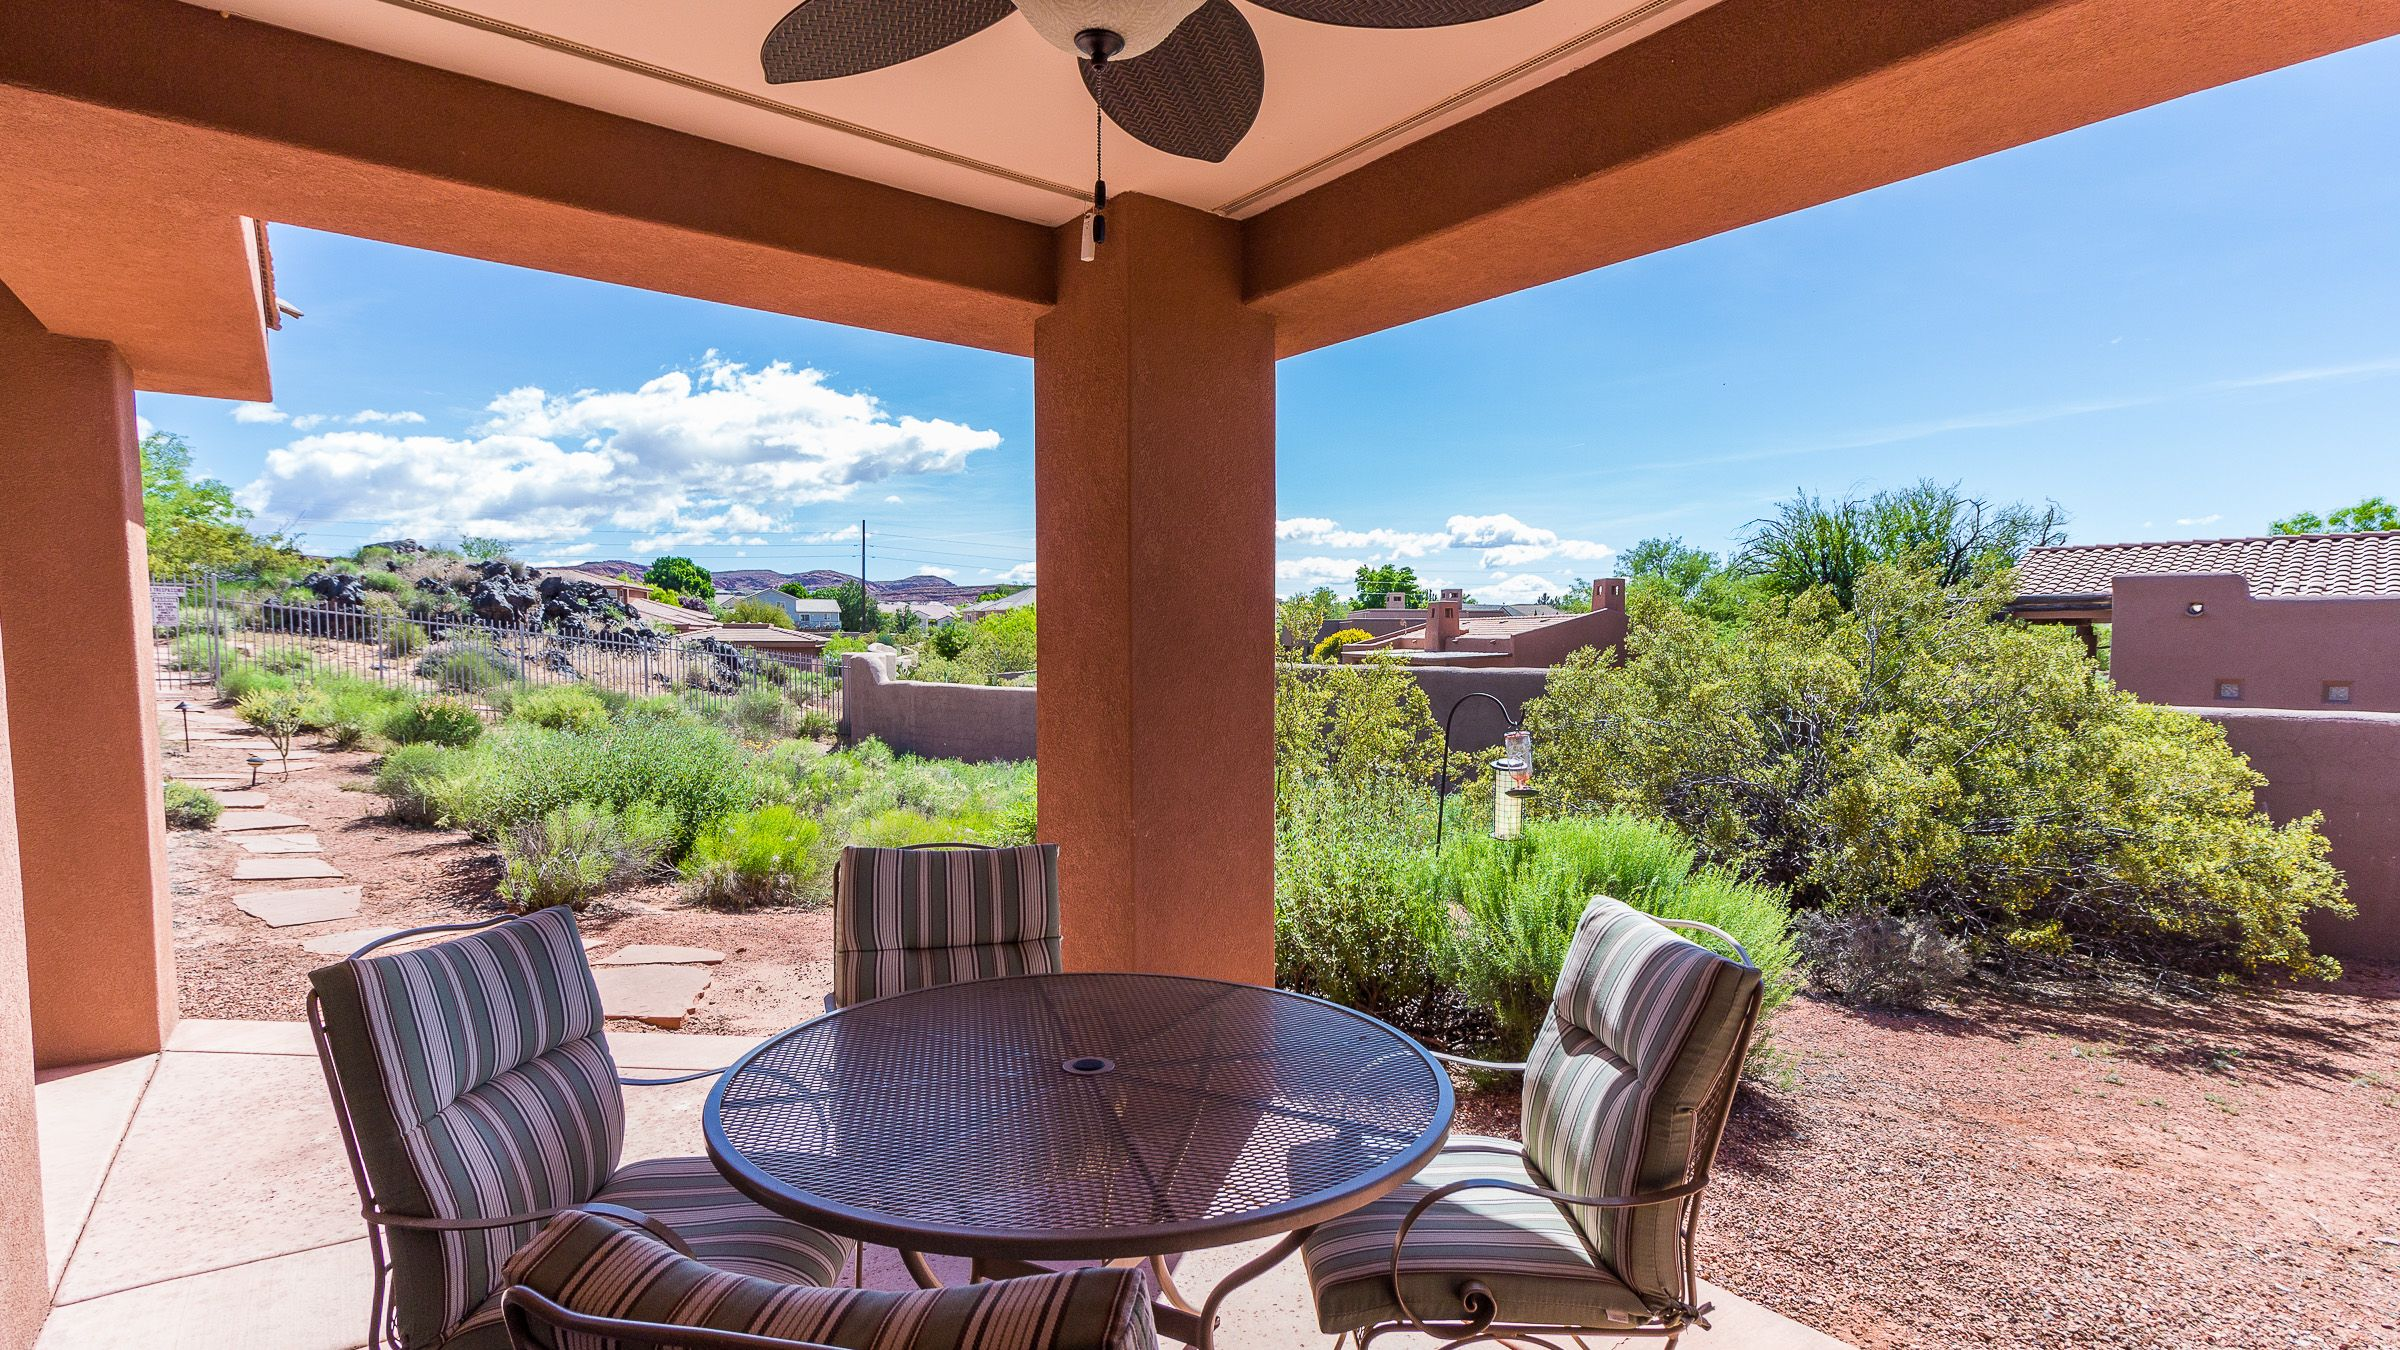 Dog Friendly Immaculate 2br 2ba Vacation Home In Beautiful Entrada